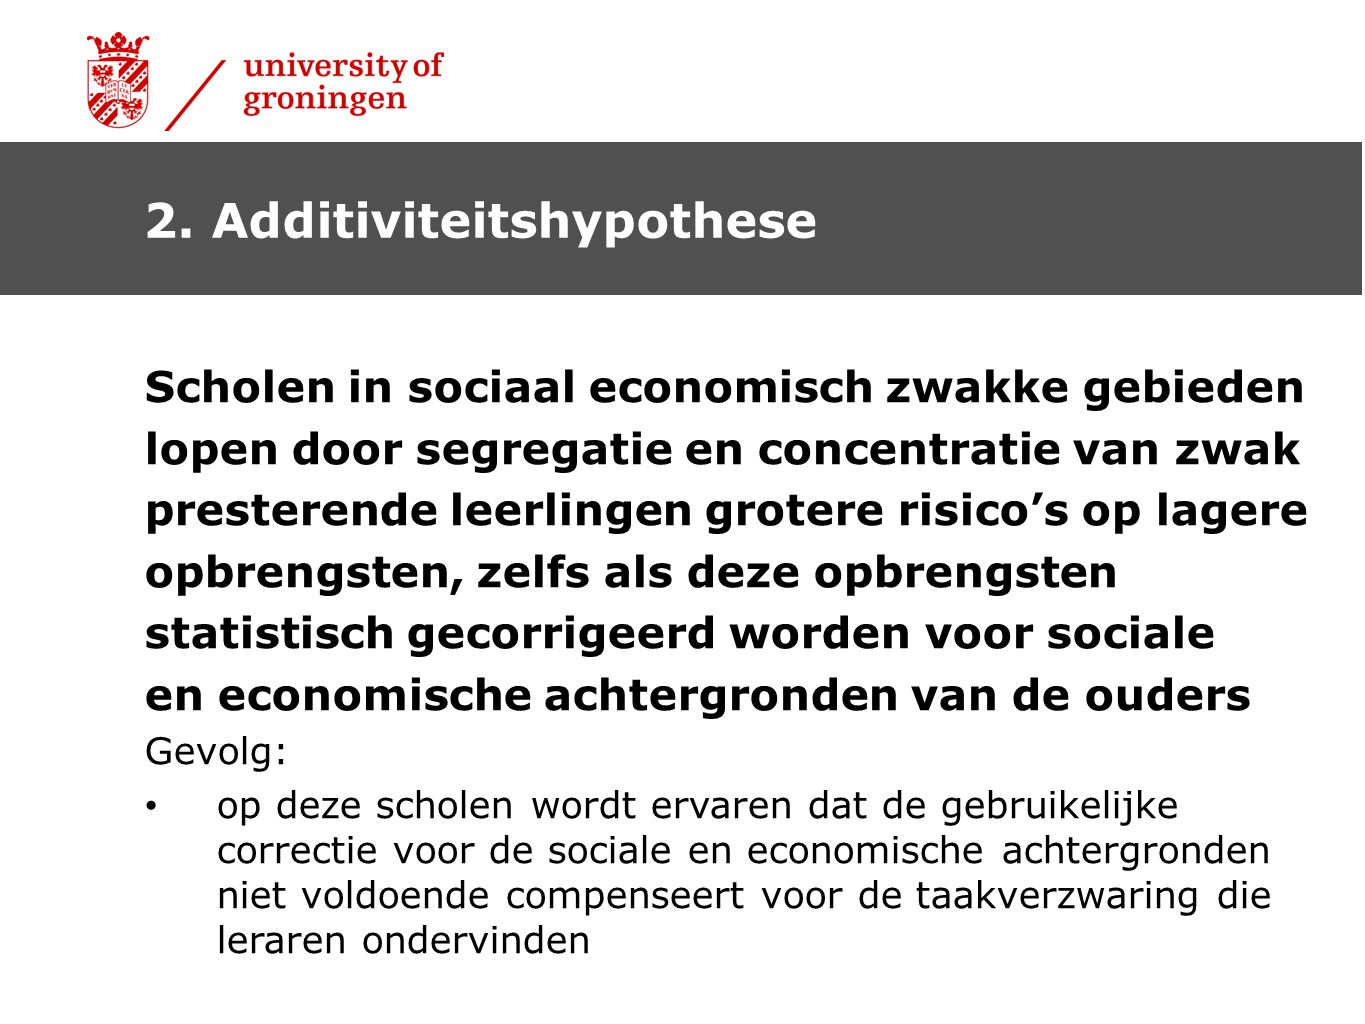 2. Additiviteitshypothese